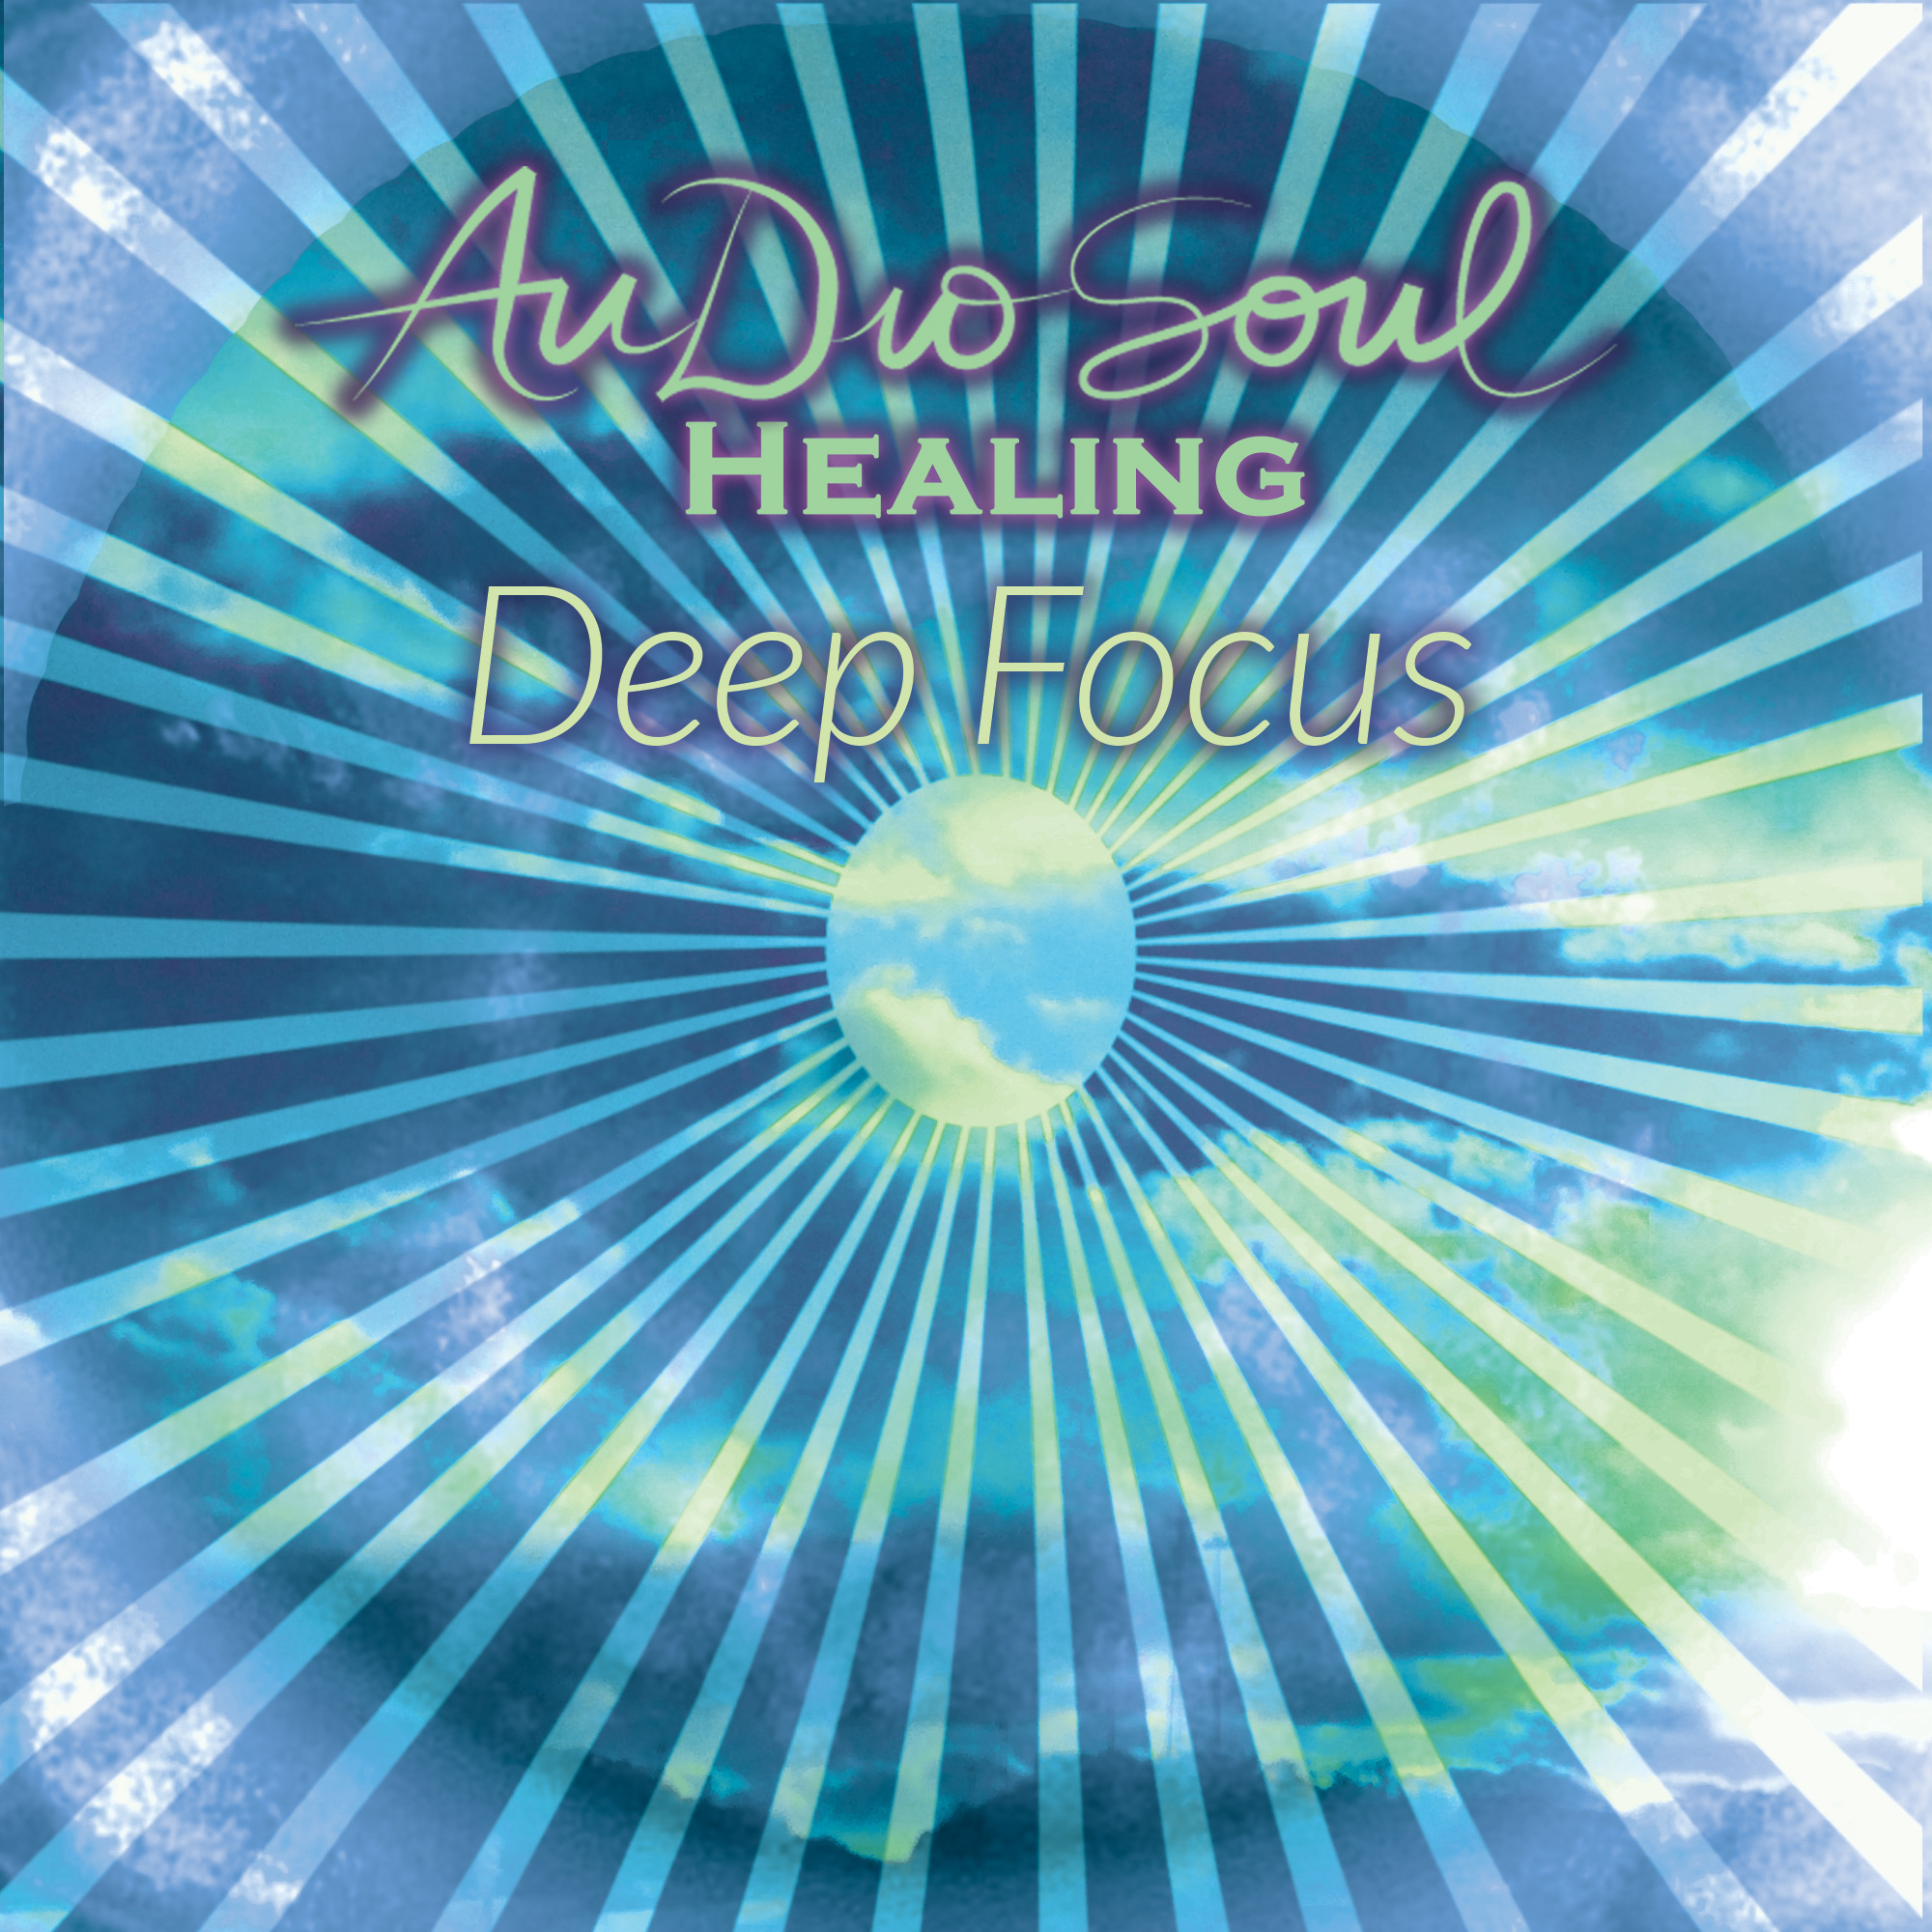 Energy, Frequency & Vibration | AudioSoul Healing